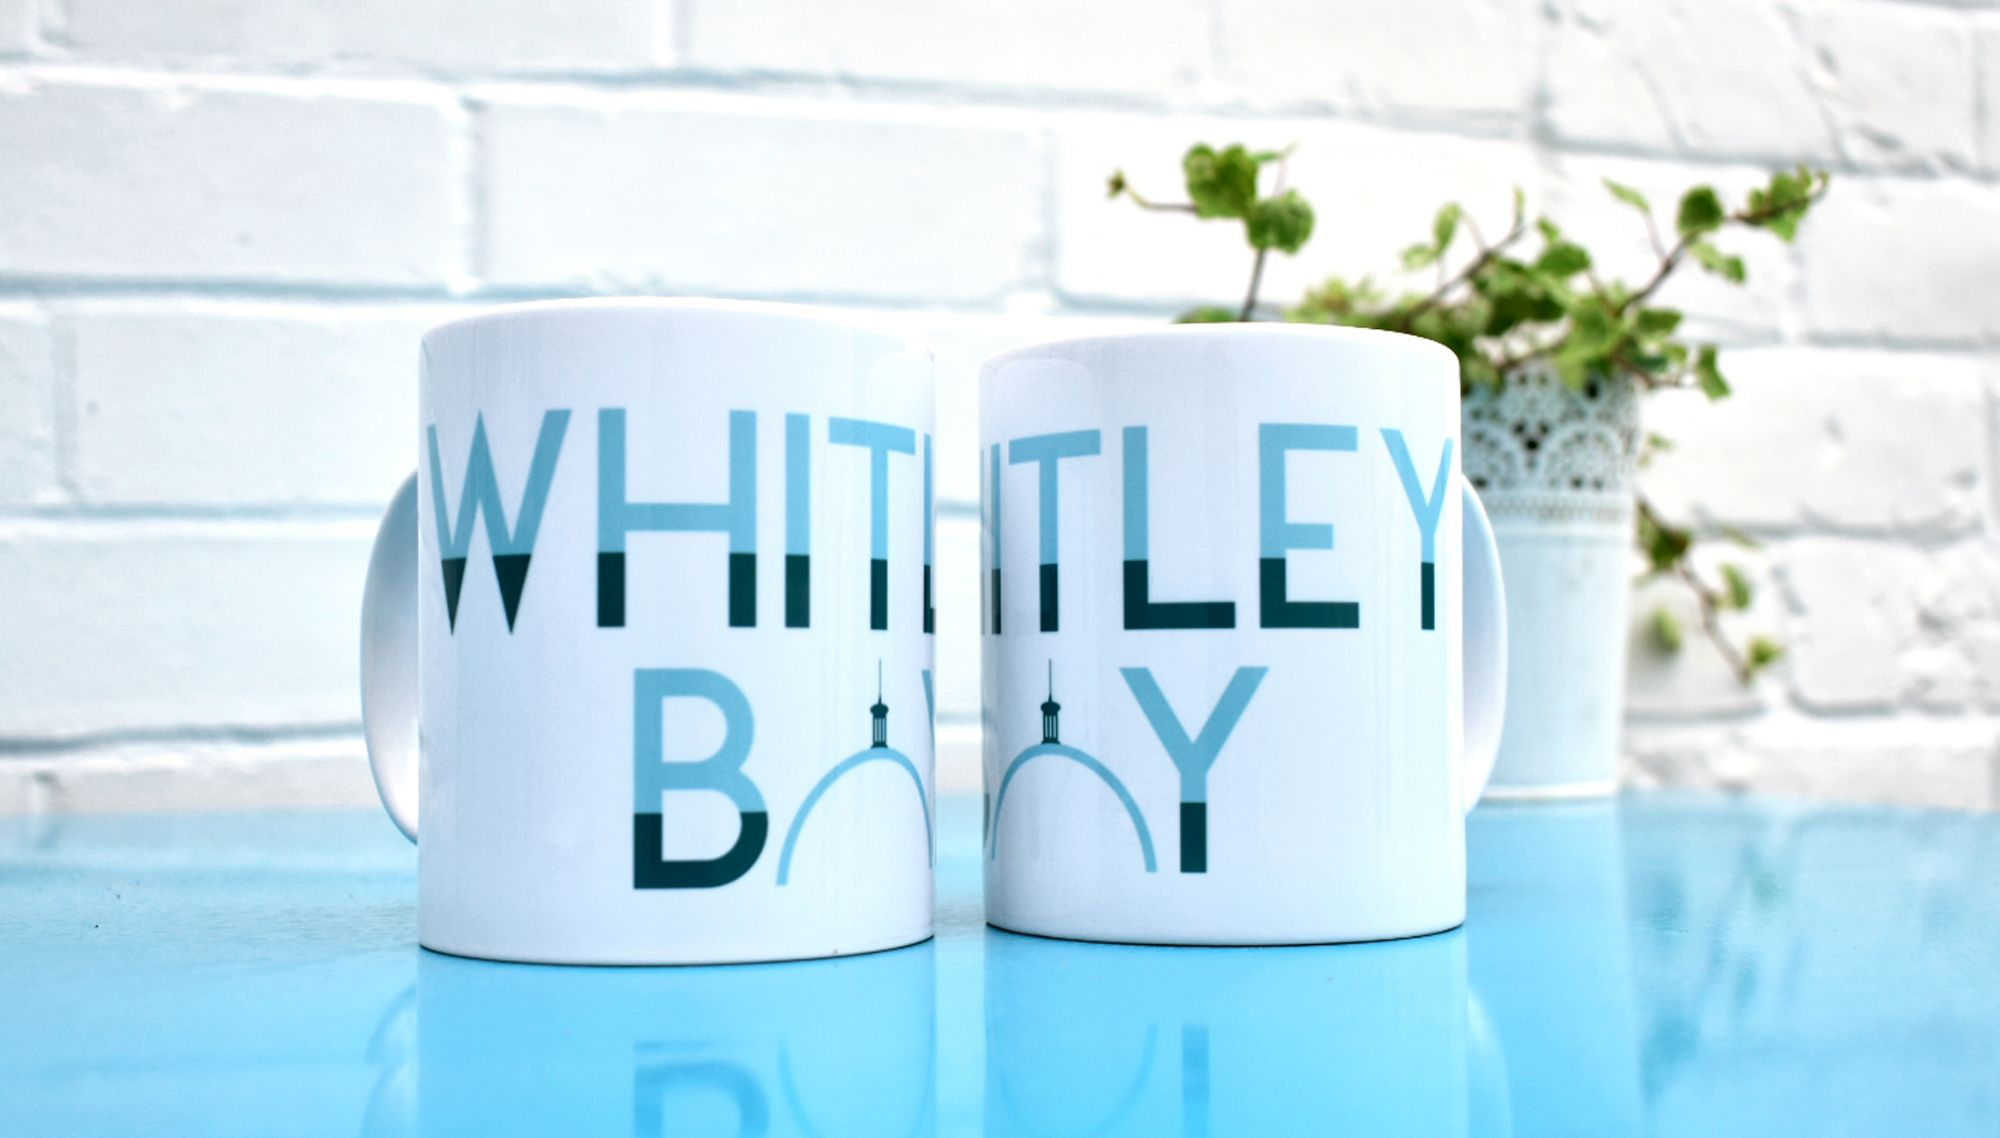 whitley bay mug offer 1 mug £9.00, 2 mugs £15.00